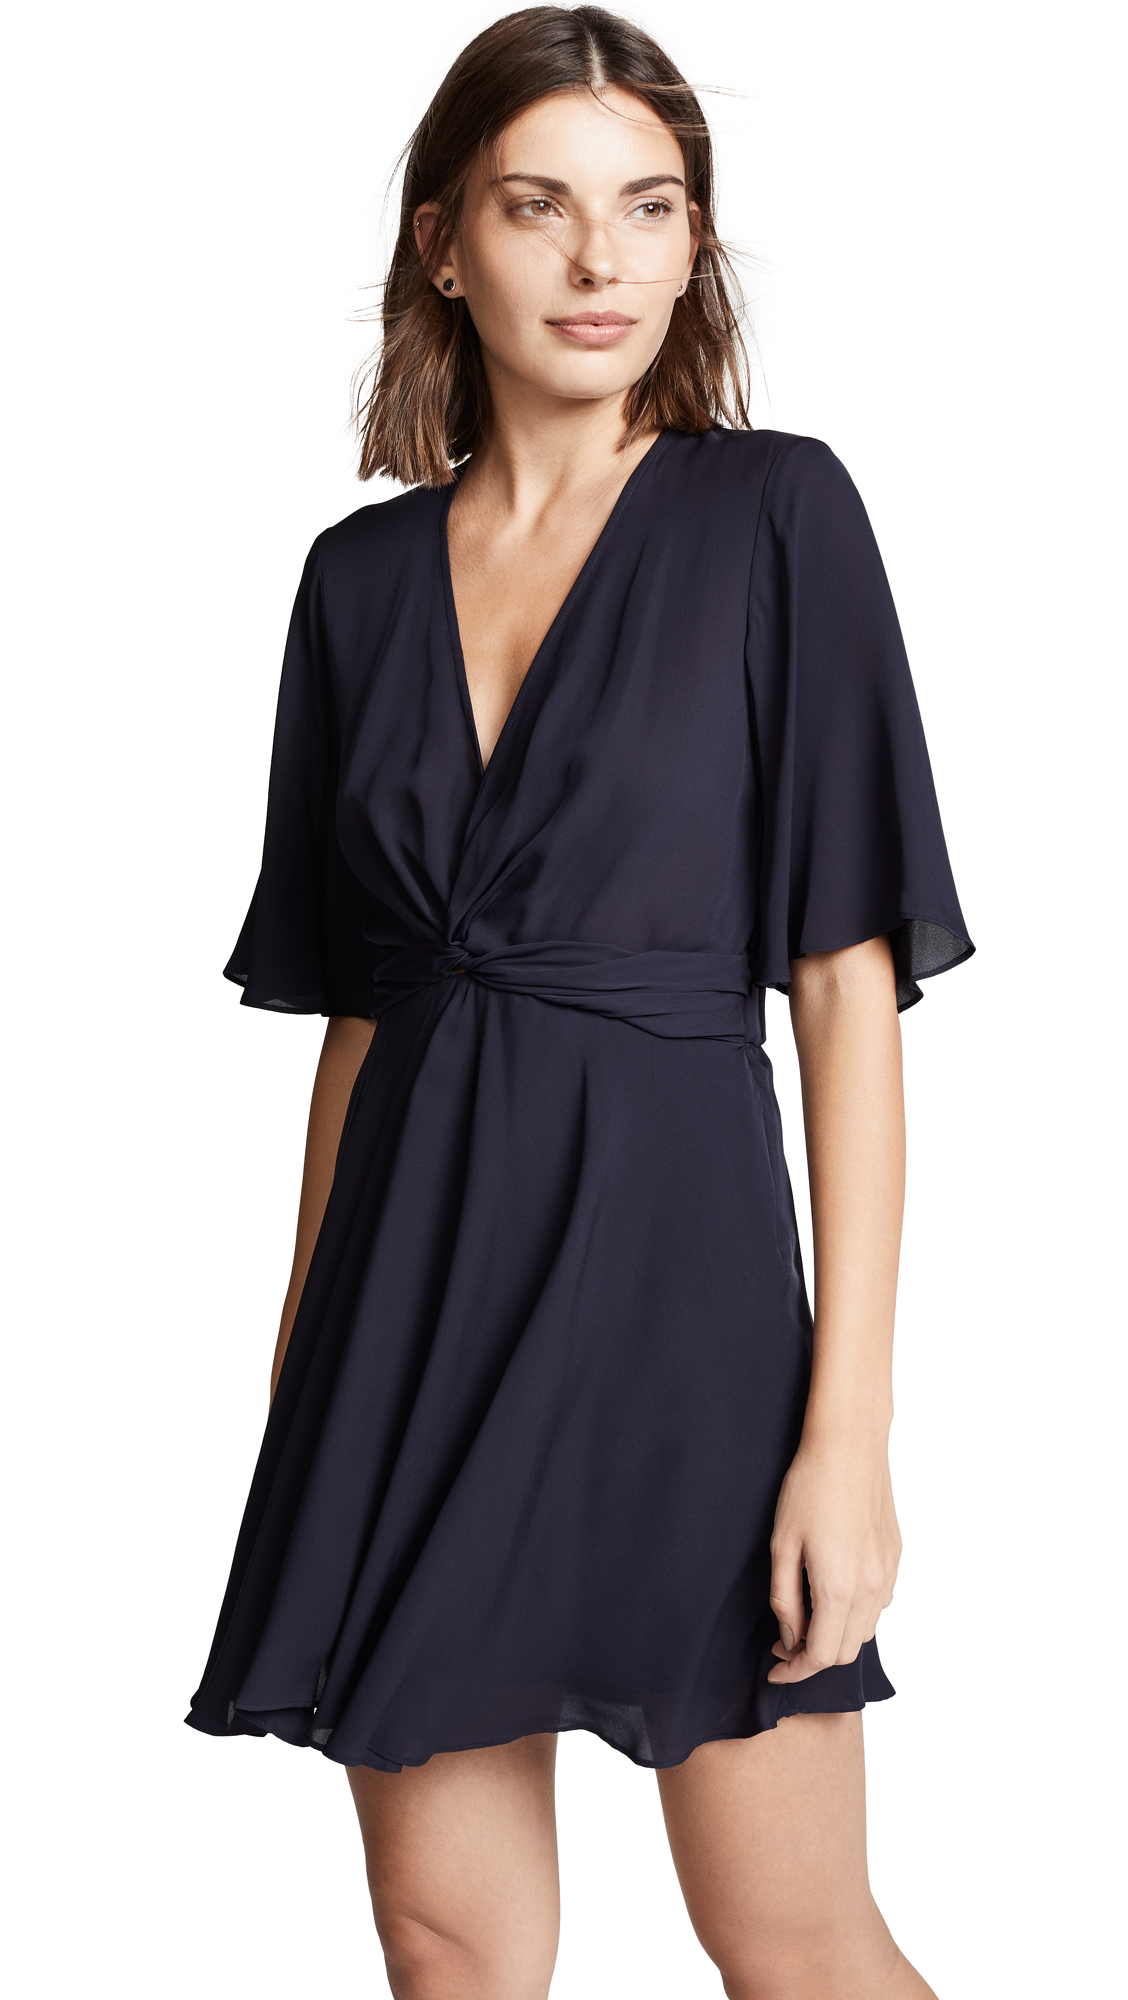 A.L.C. Ava Dress - Midnight